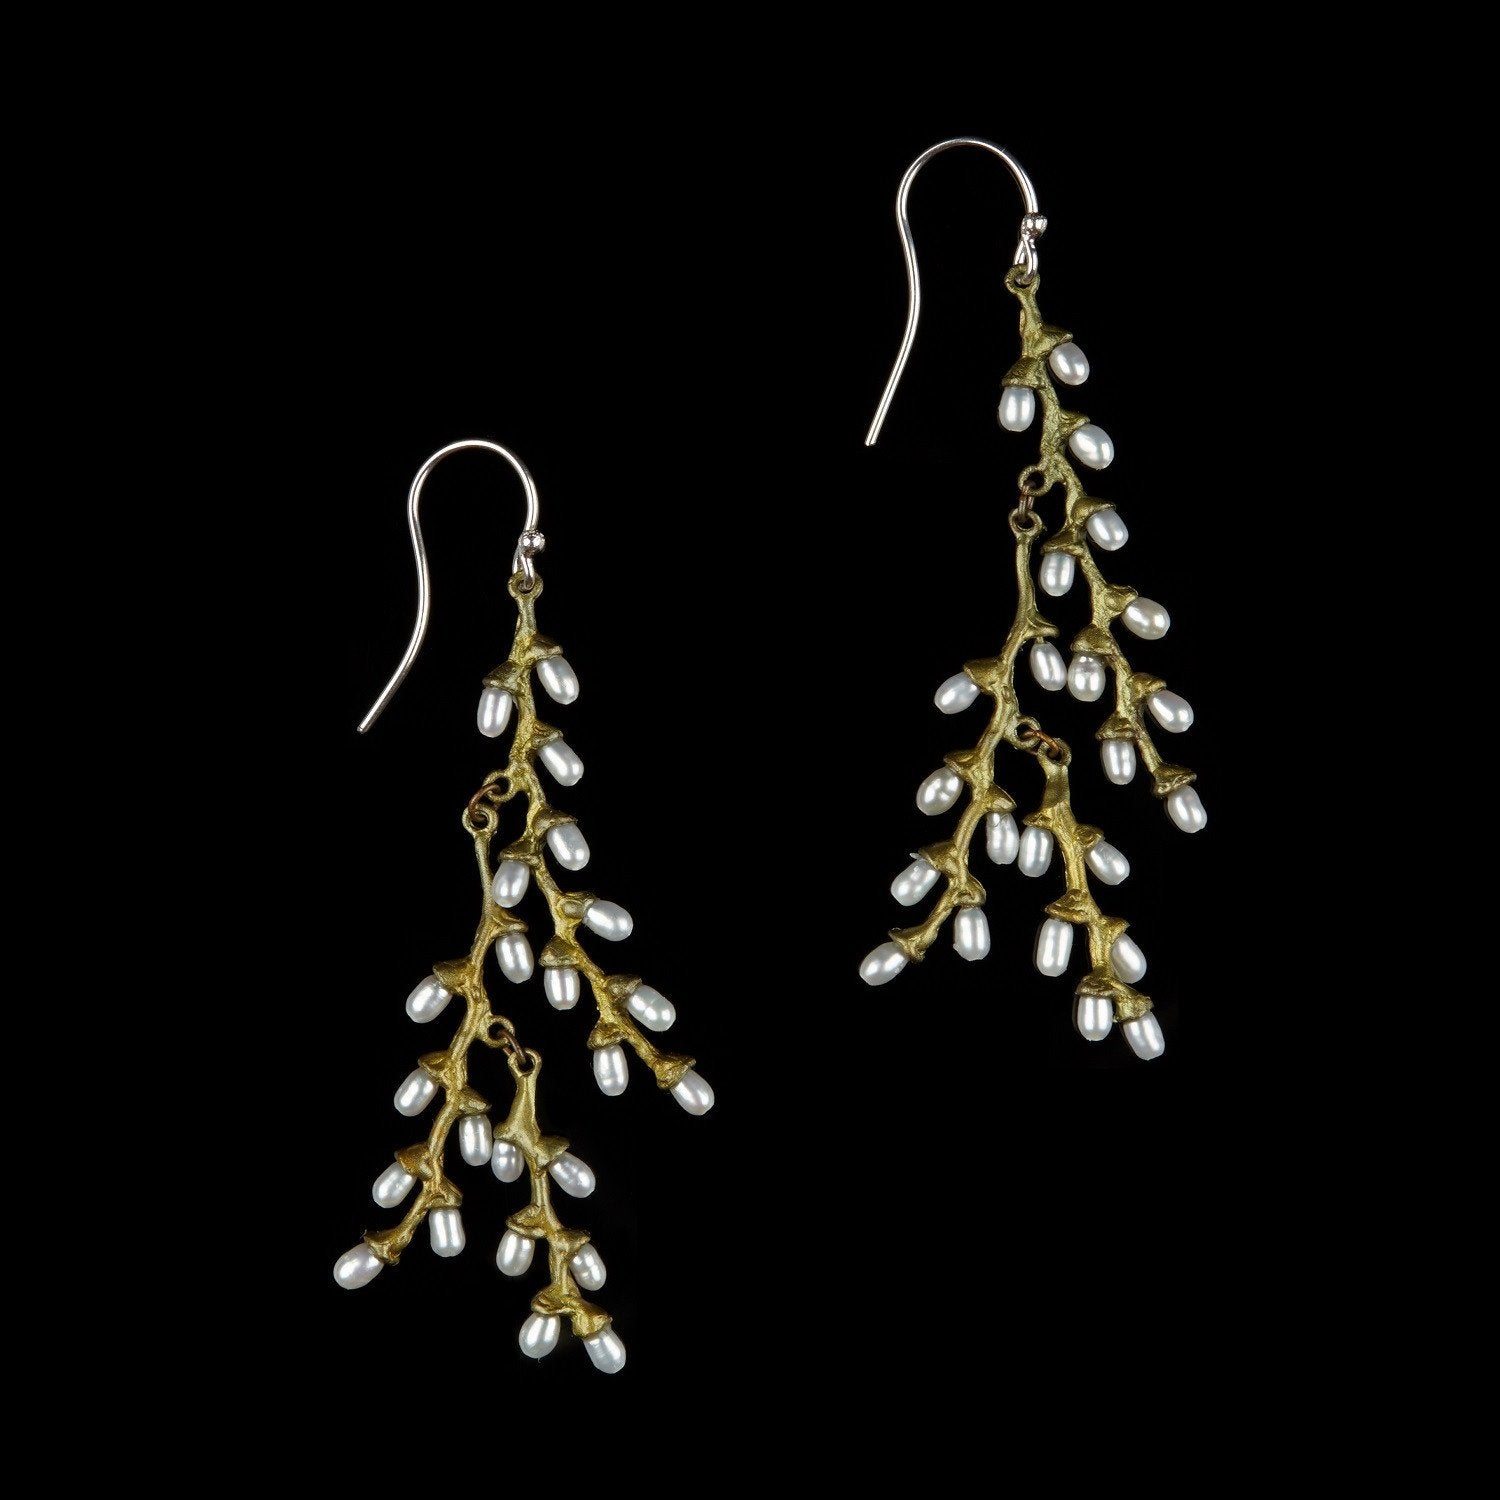 Rice Earrings - Multi Pearl Long Wire